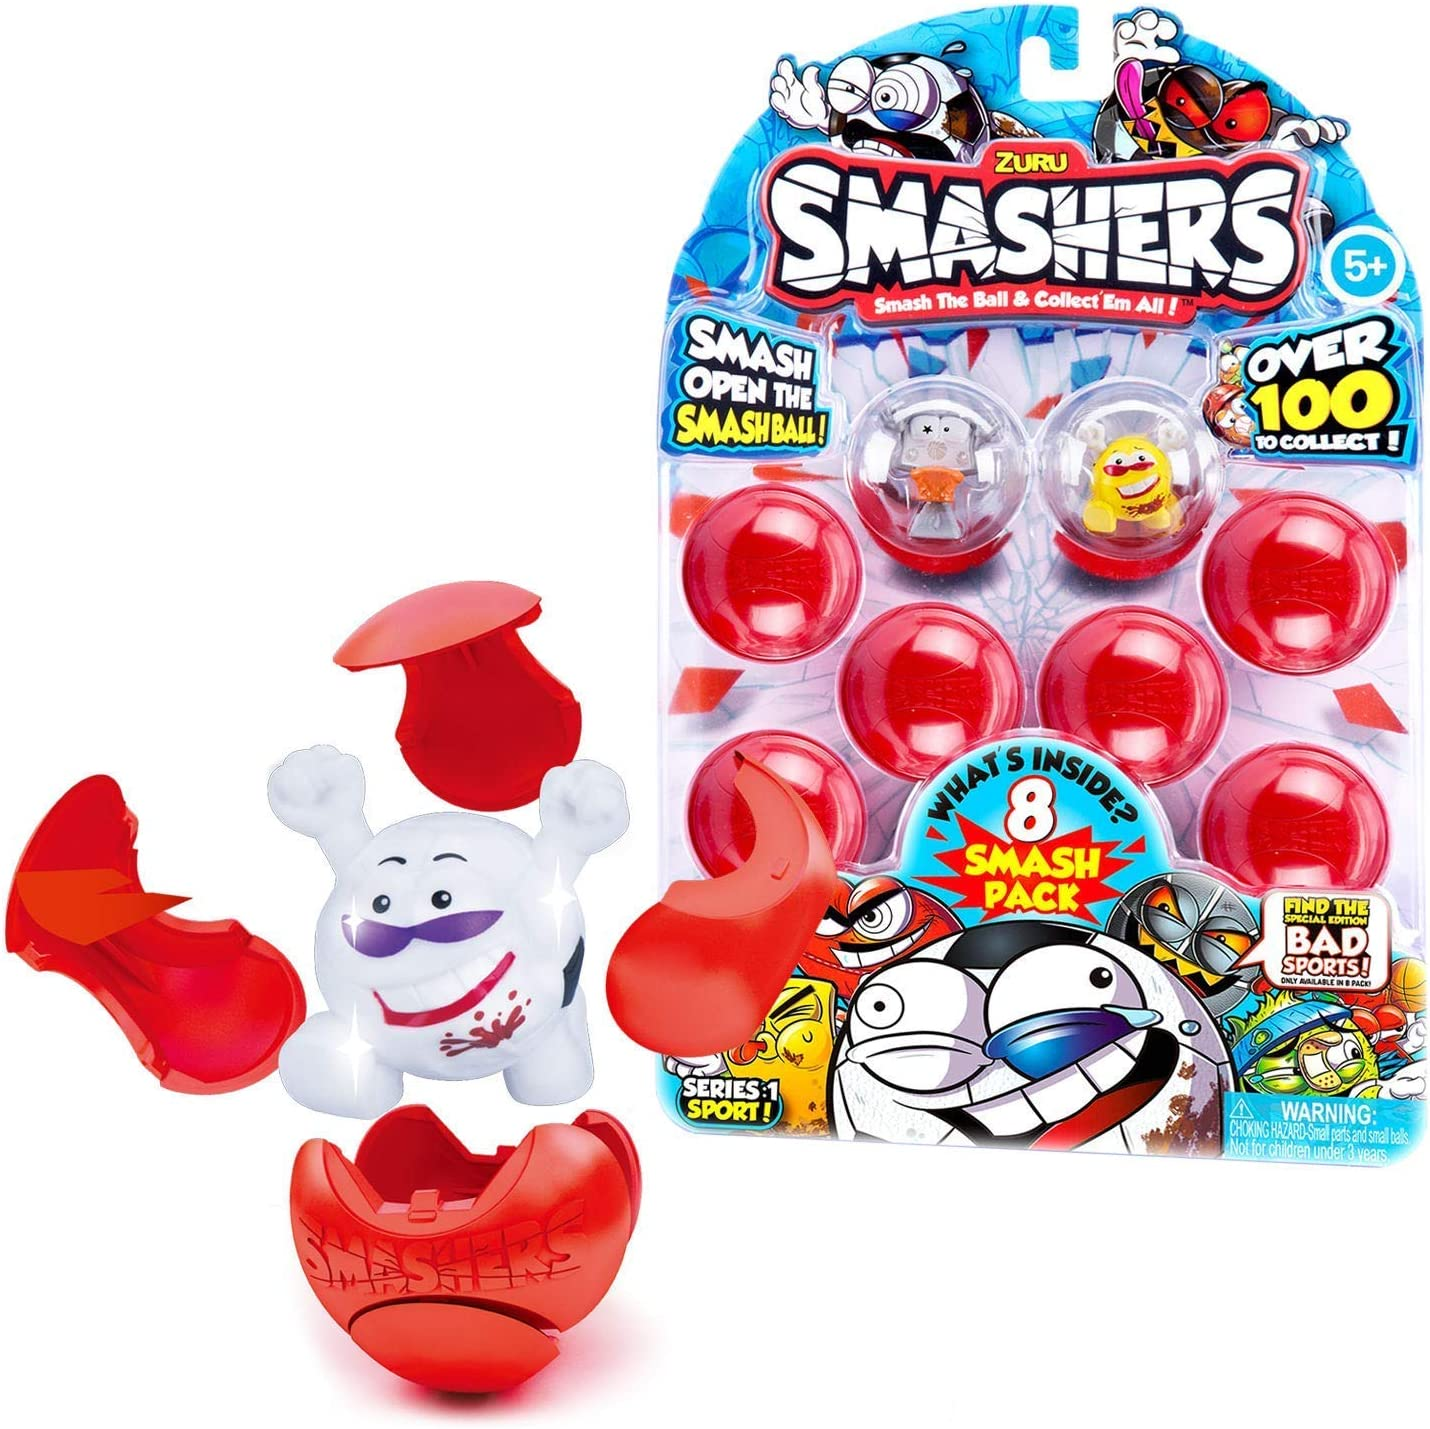 Zuru Smashers Smash Ball boues Bus limited edition Collectables Toy 2 Smashers